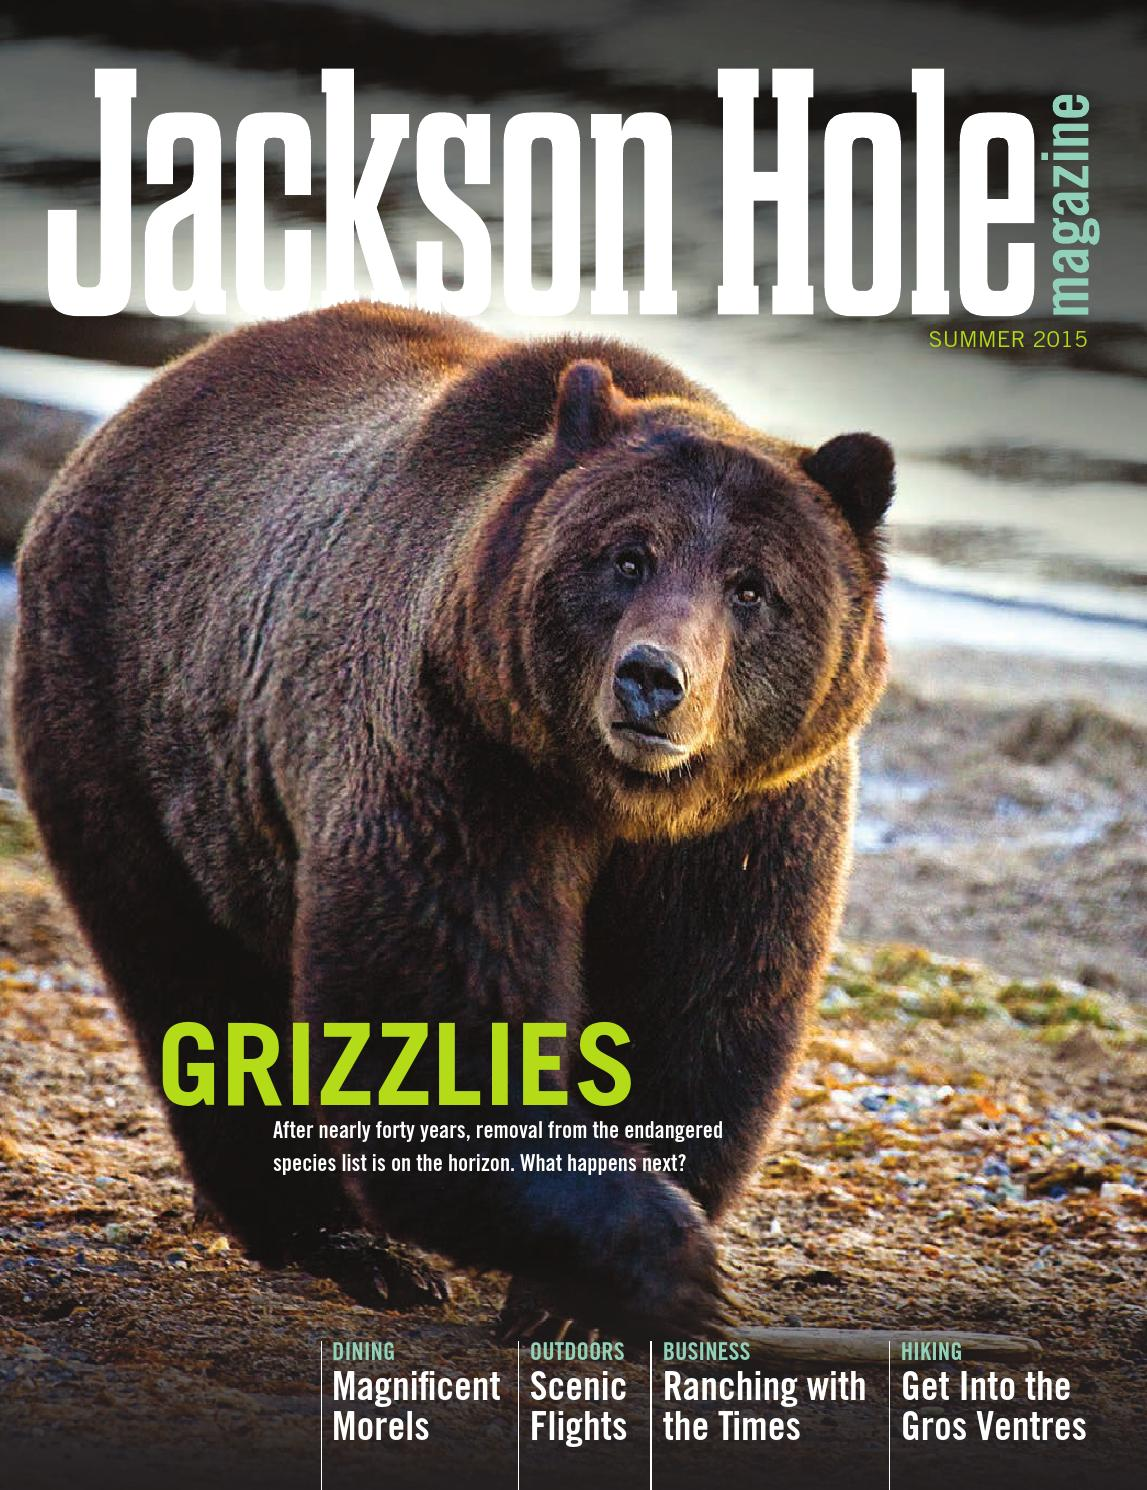 grizzly man essay Check out our top free essays on timothy treadwell to help you write your own essay brainiacom join now grizzly man critical essay.